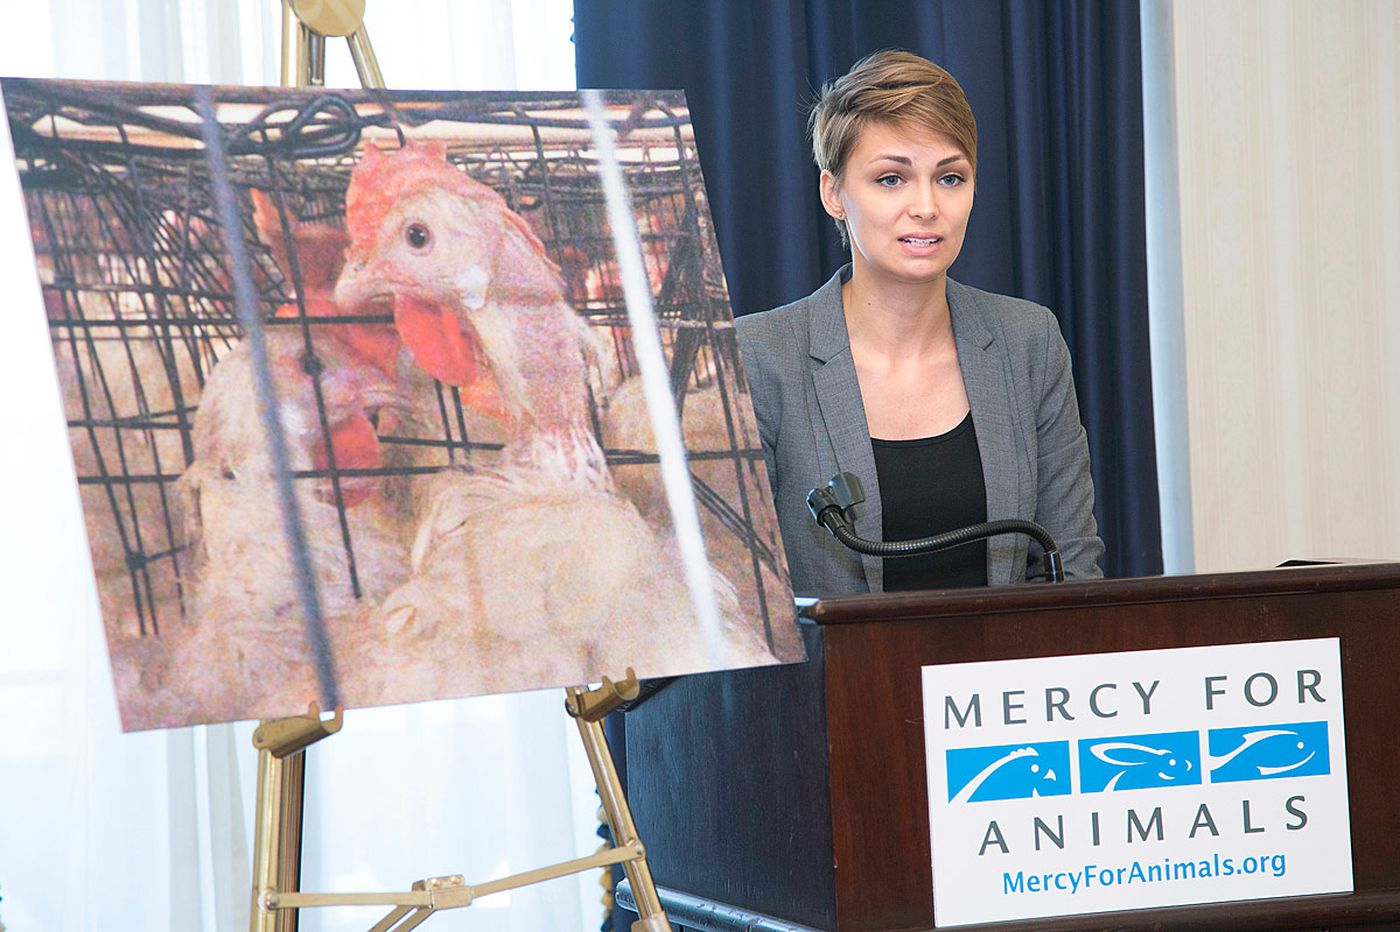 Activists allege cruelty by Eggland's Best supplier, company fights back